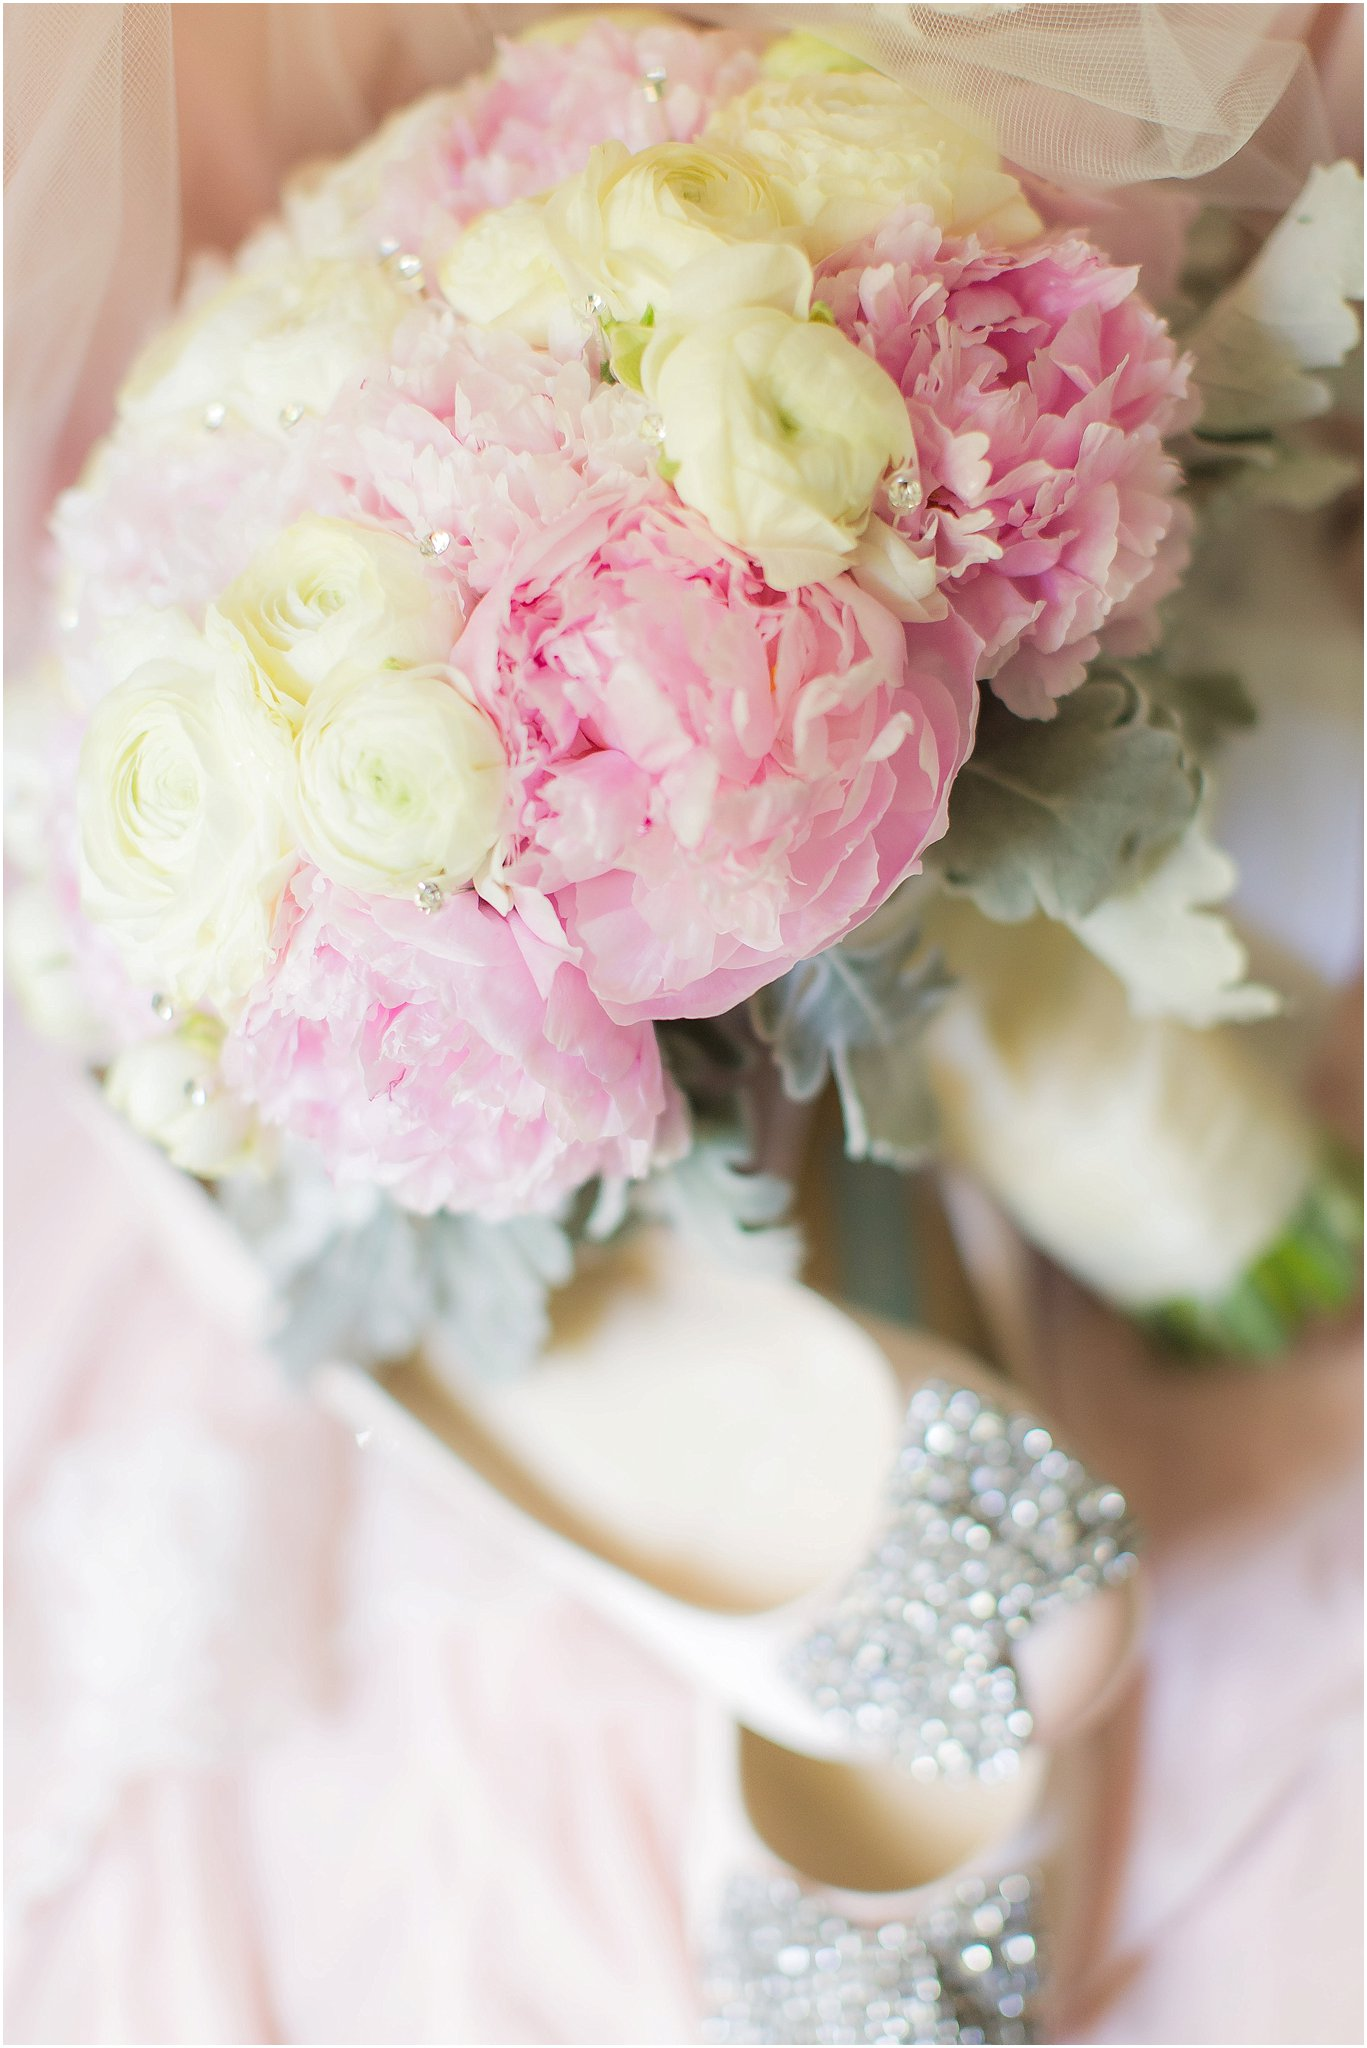 Romantic blush details of peony bouquet and bridal flats